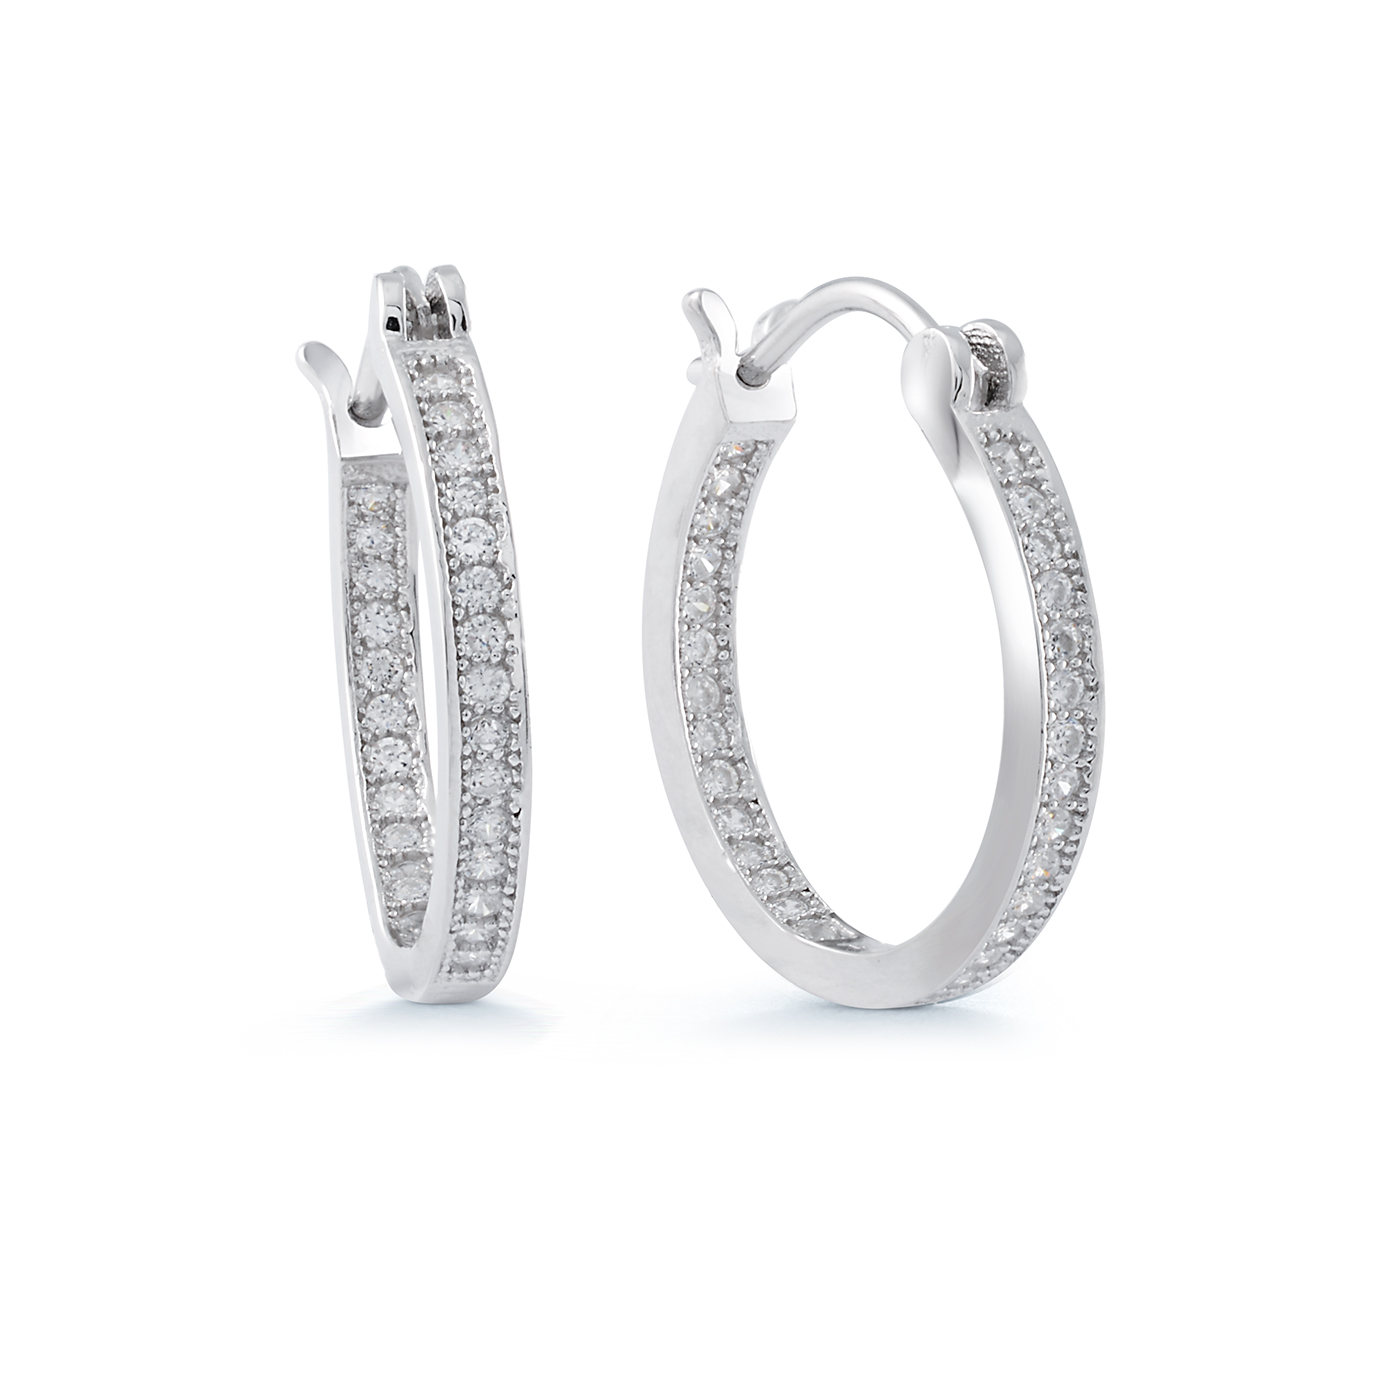 Hoop earrings in sterling silver with cubic zirconia